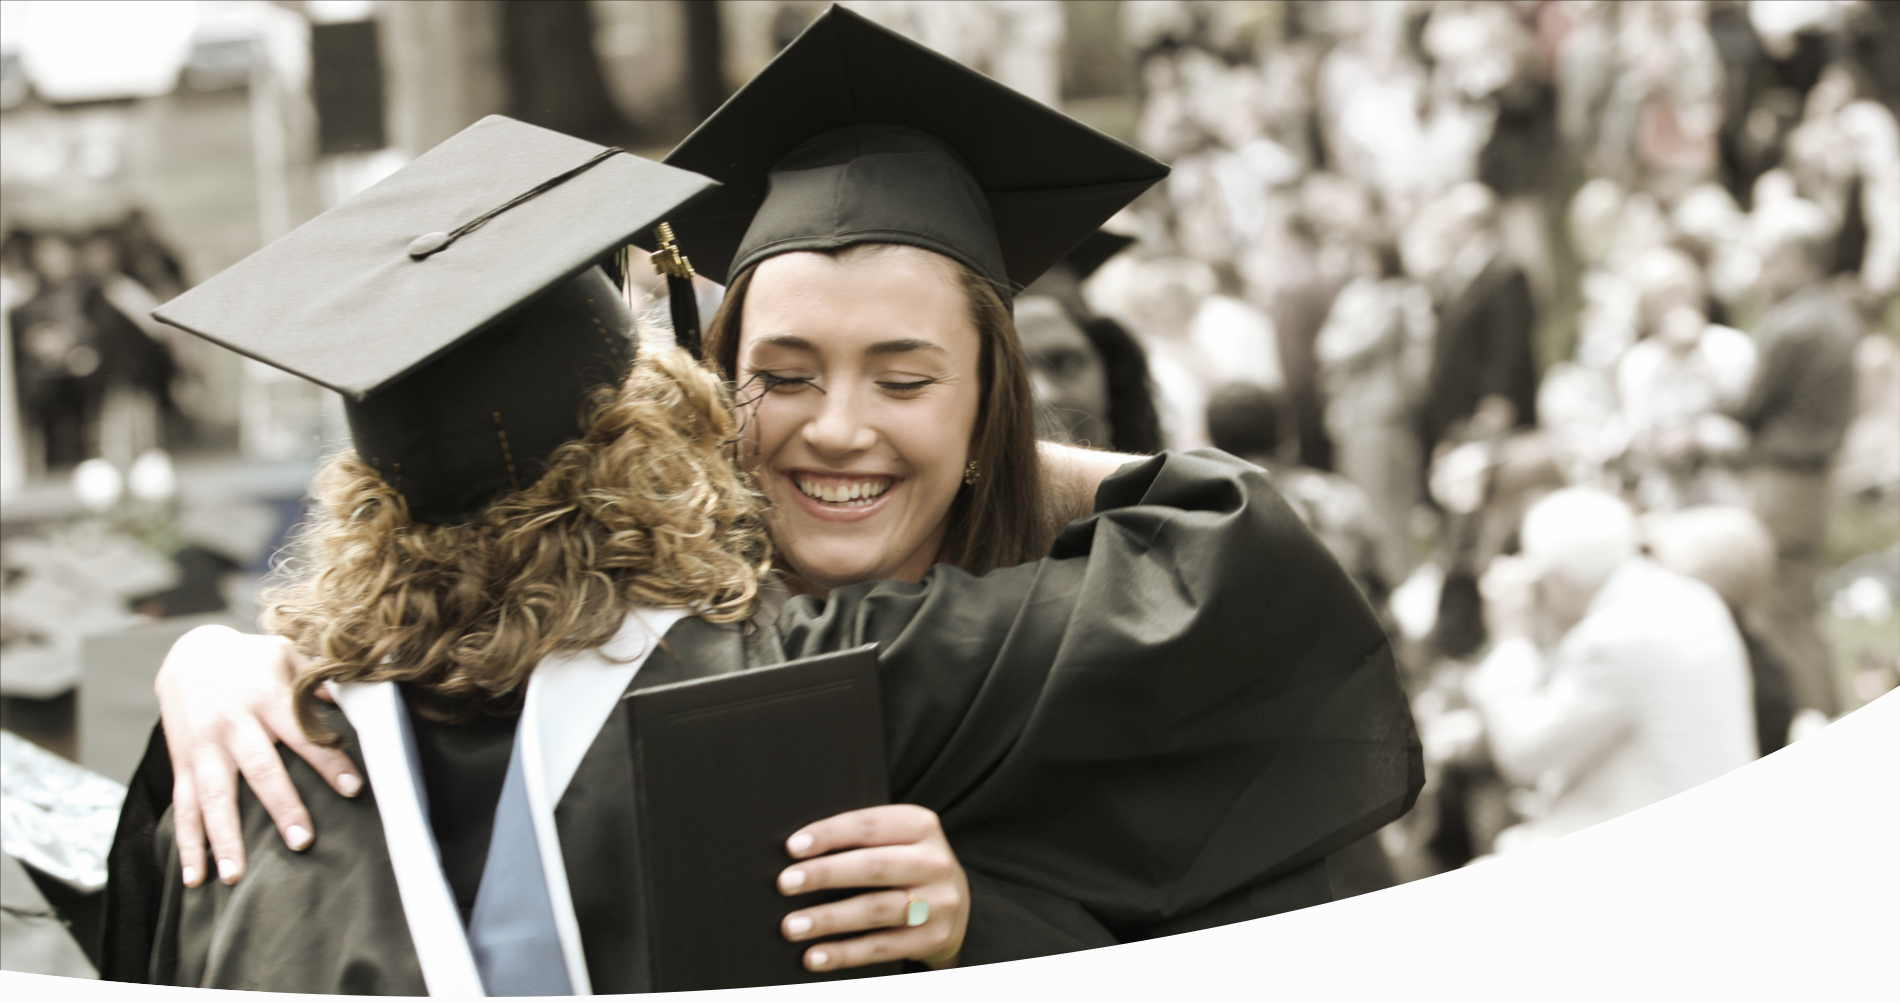 Buying graduation attire packages is more convenient that purchasing individual pieces. Here, we have reasons why you should! | Image source: Churchill Gowns